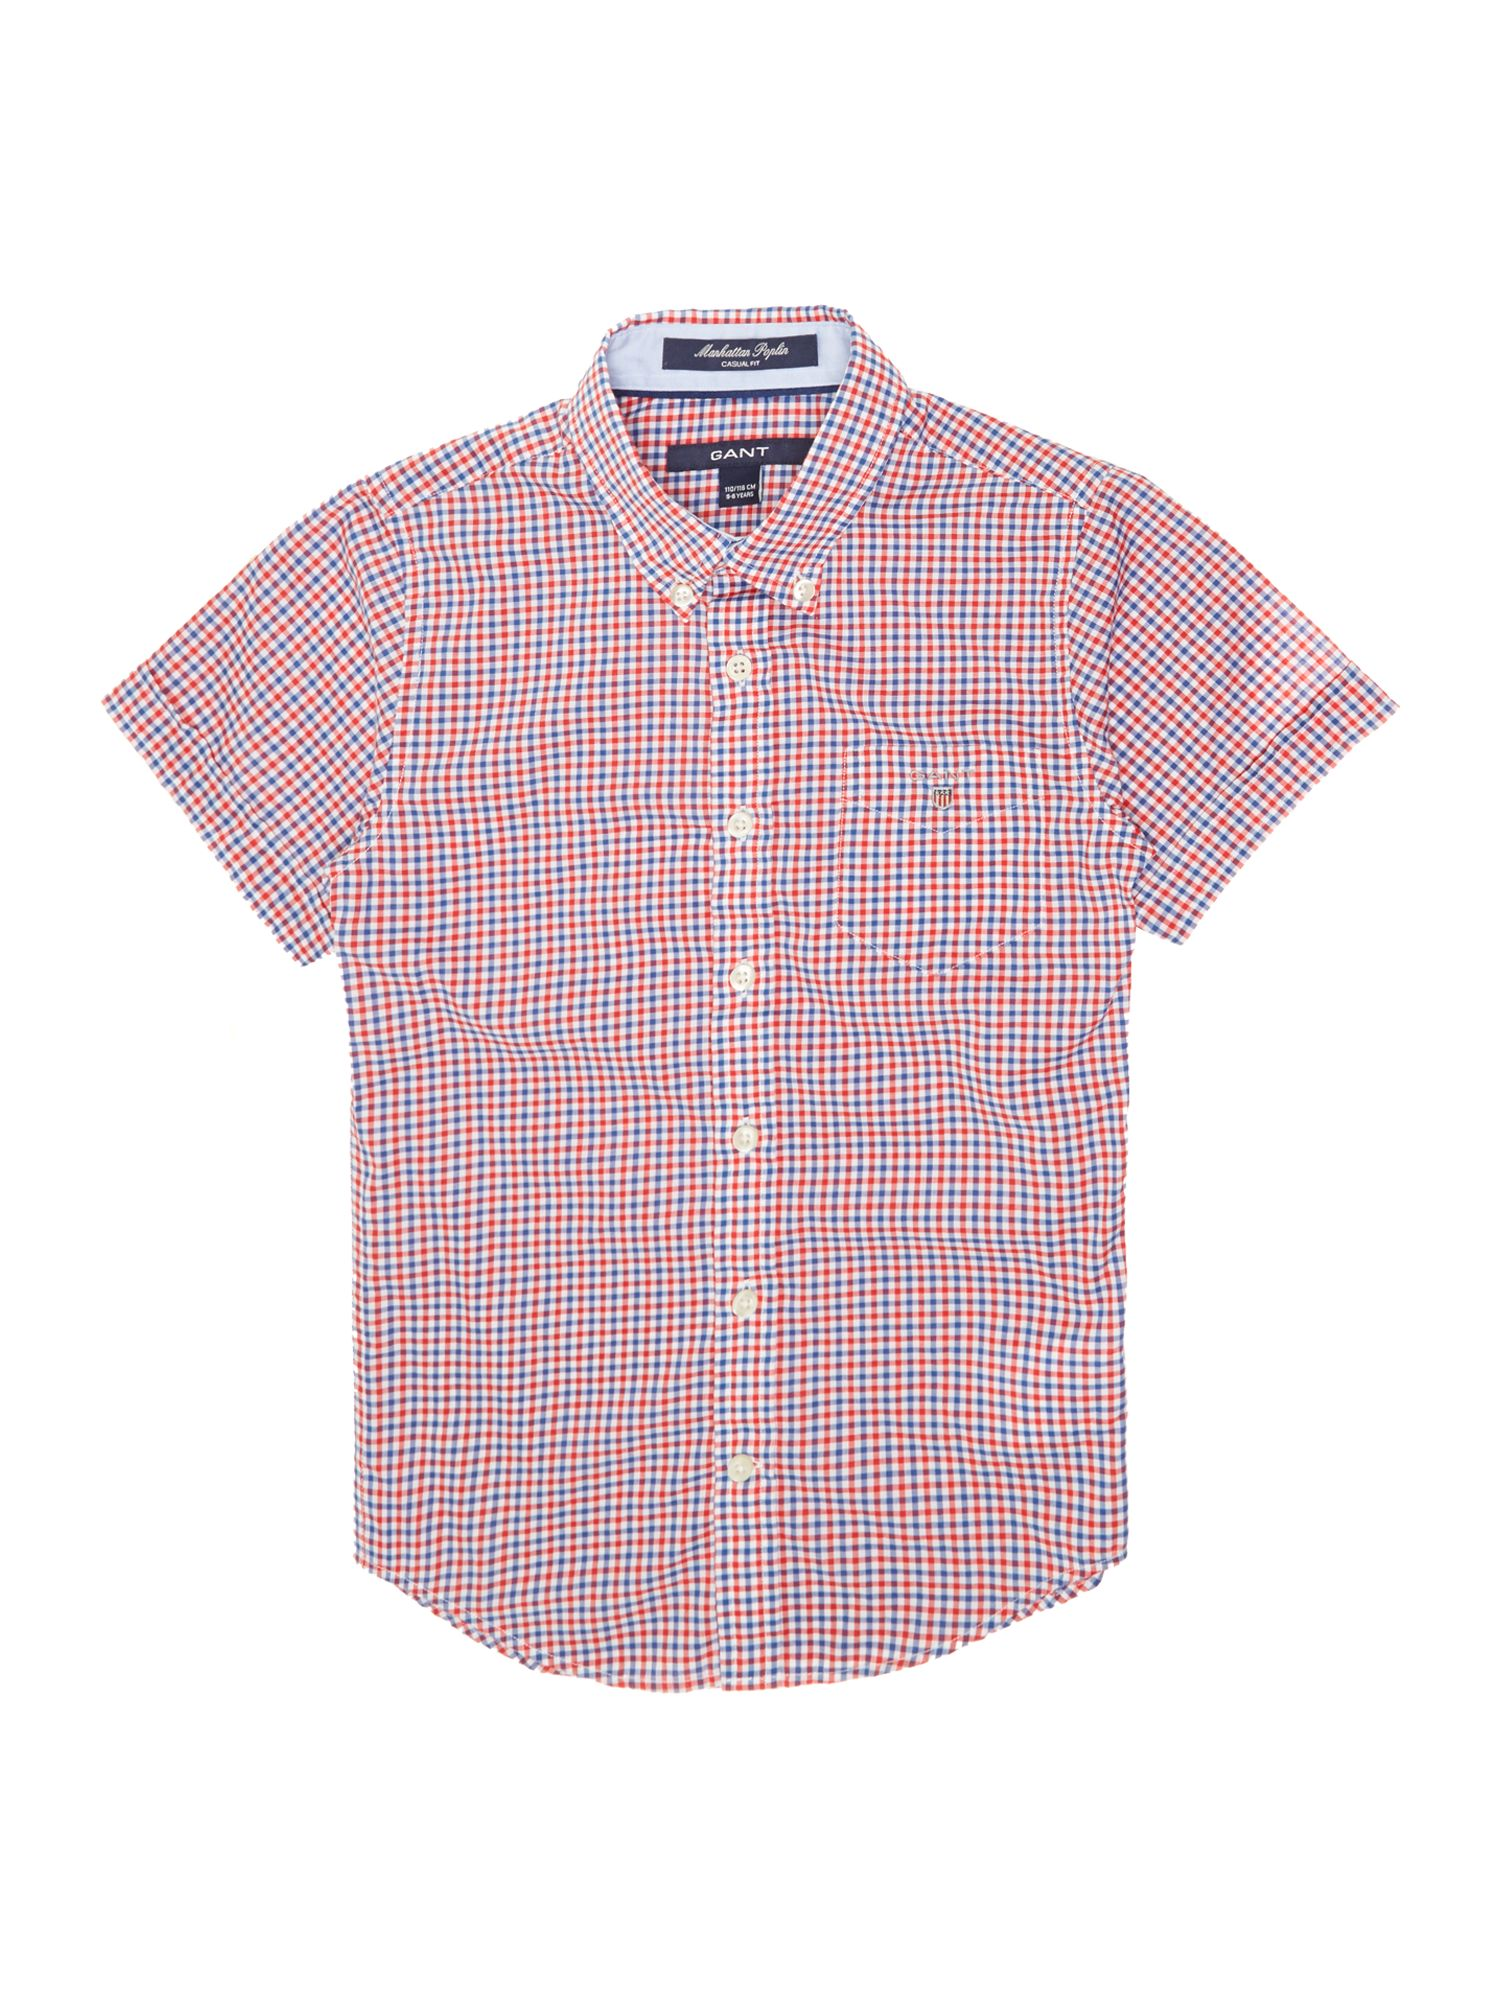 Boys gingham poplin shirt